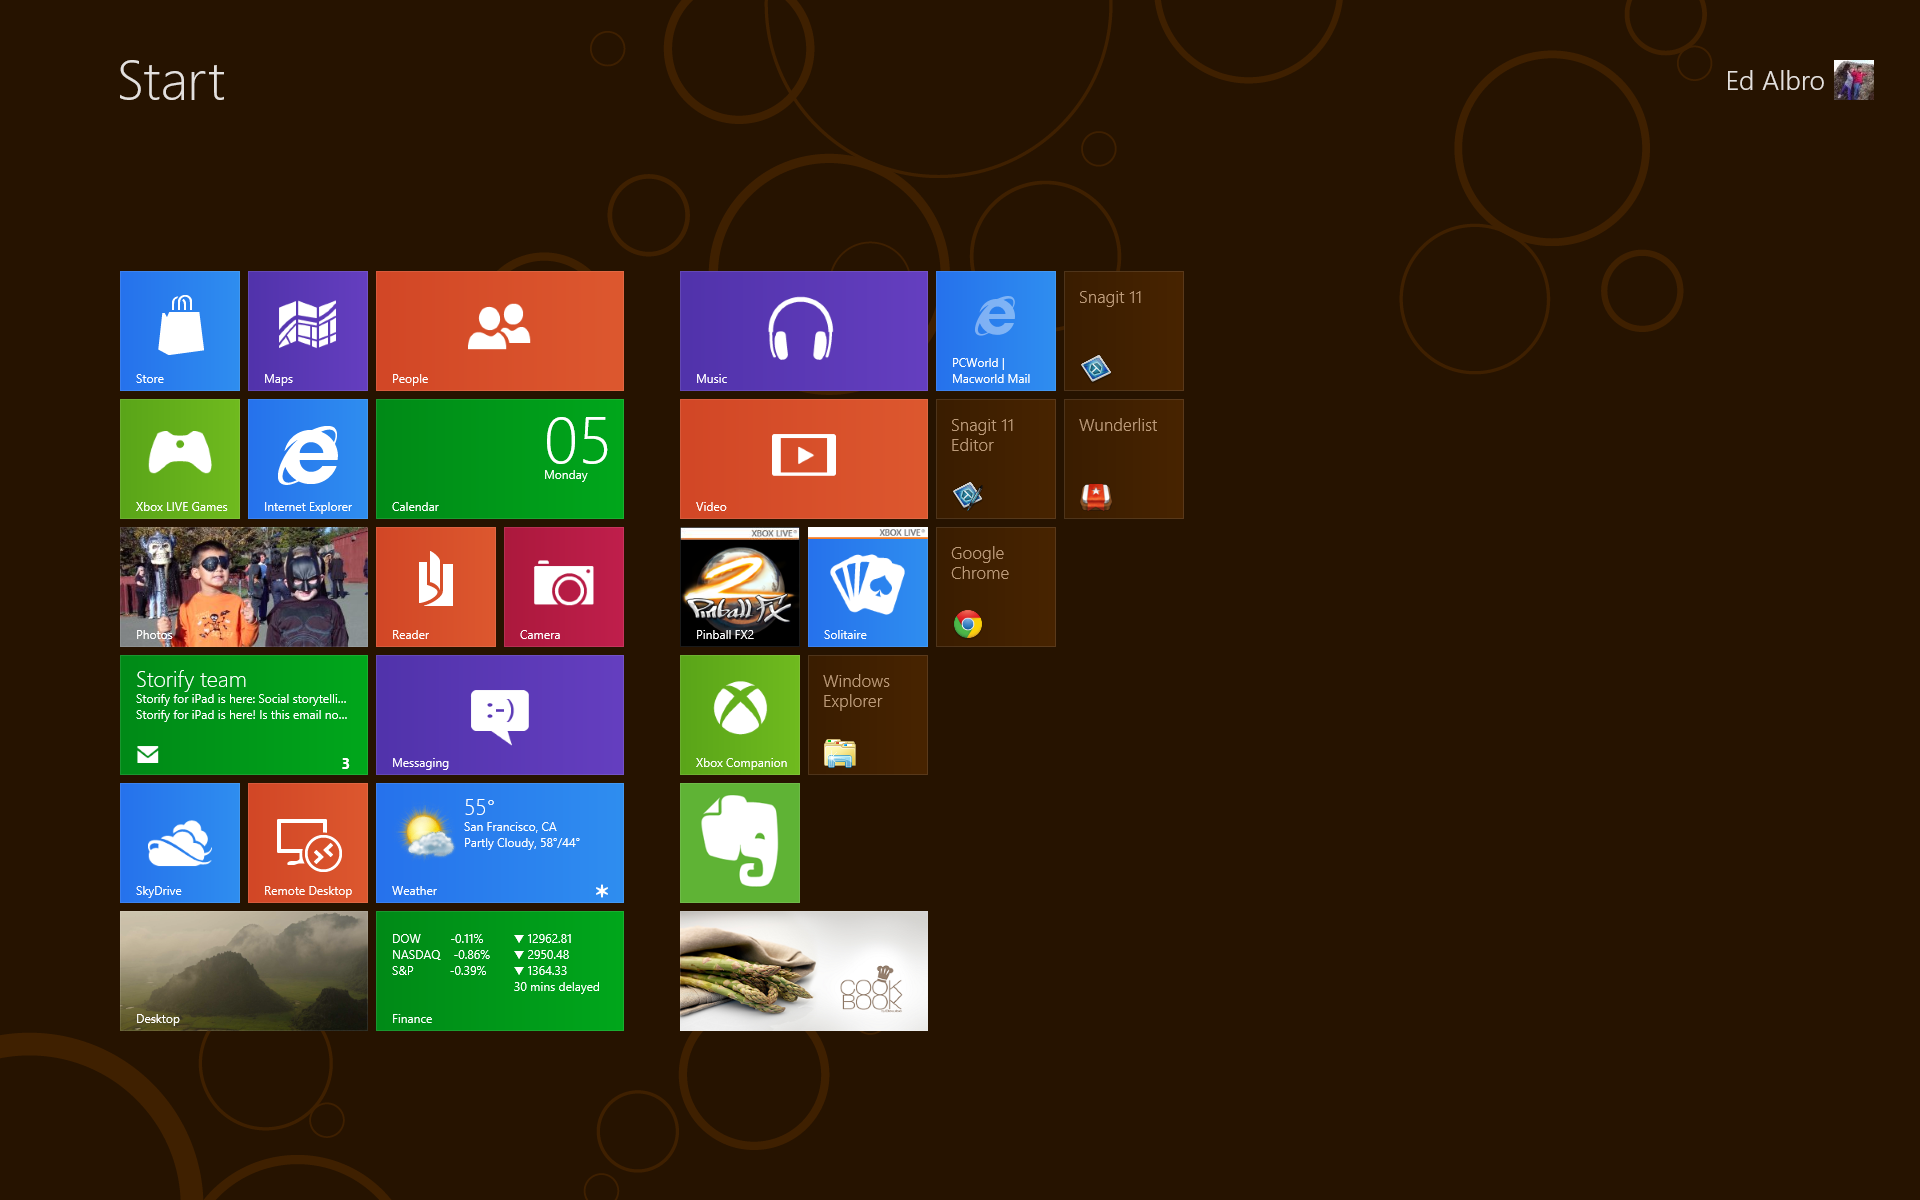 Windows 8.1 and Windows 8 transformation pack for windows 7, vista and xp.